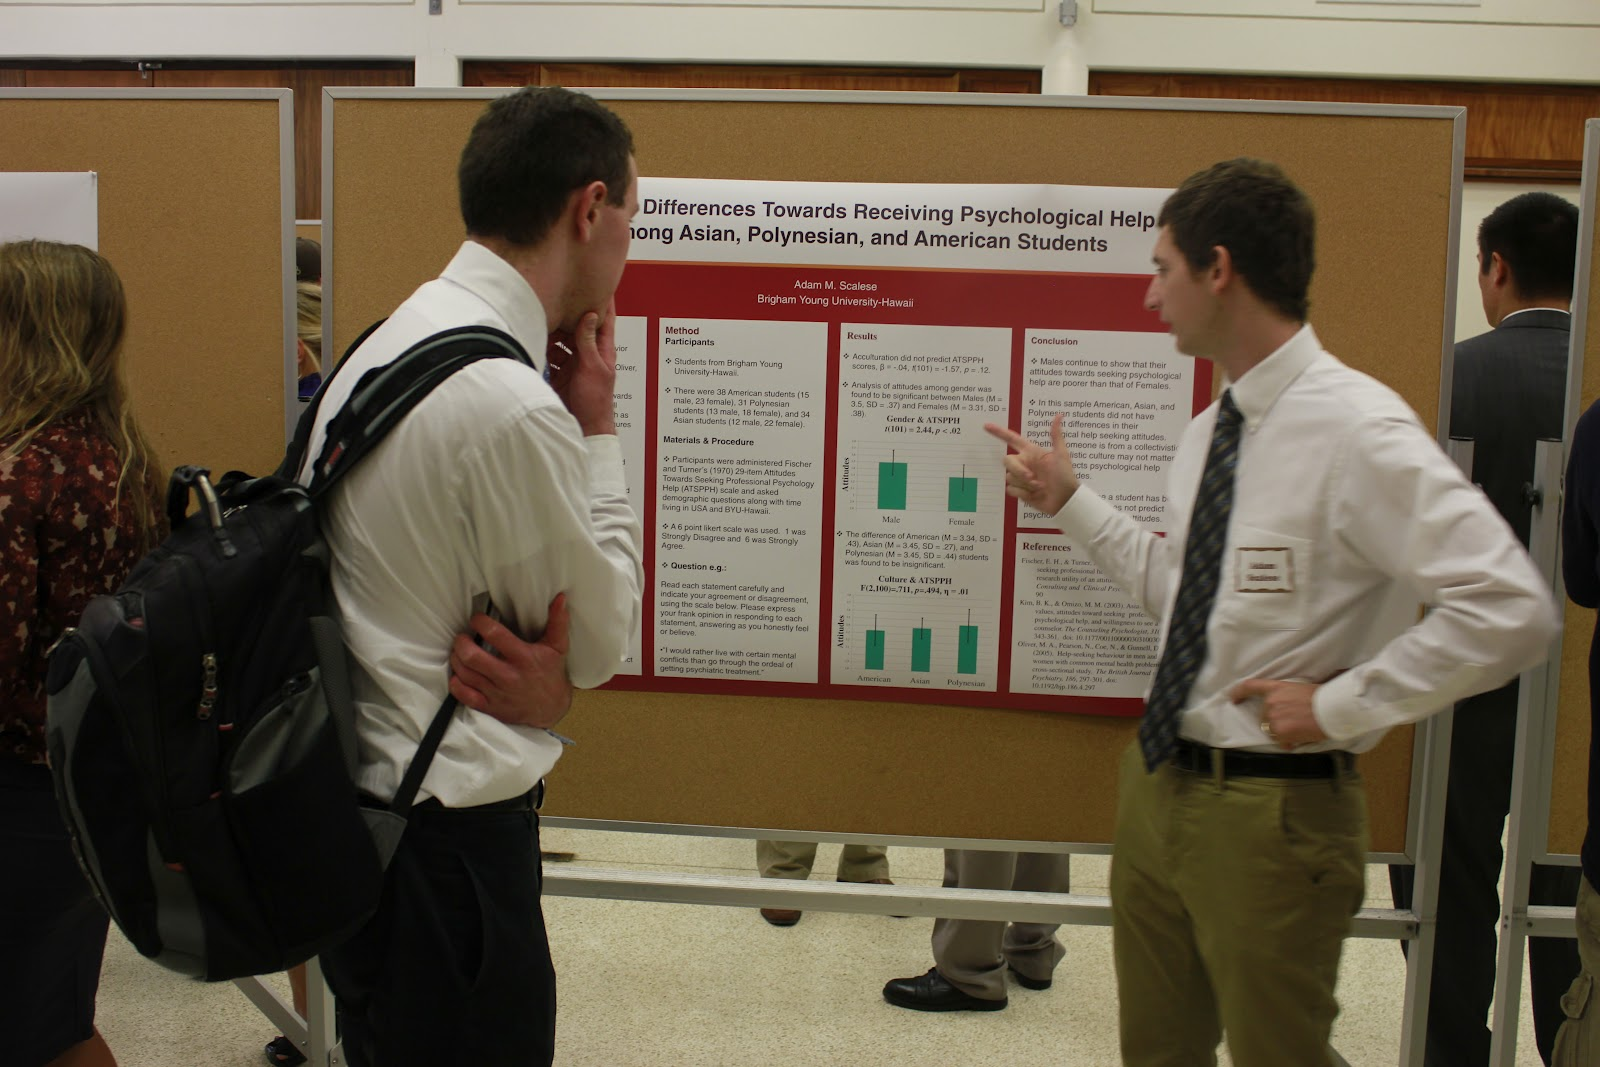 students perception towards social networking sites Use of social media by college students:  more than 50% of college students go on a social networking site several times a day (sheldon, 2008) quan-haase and .